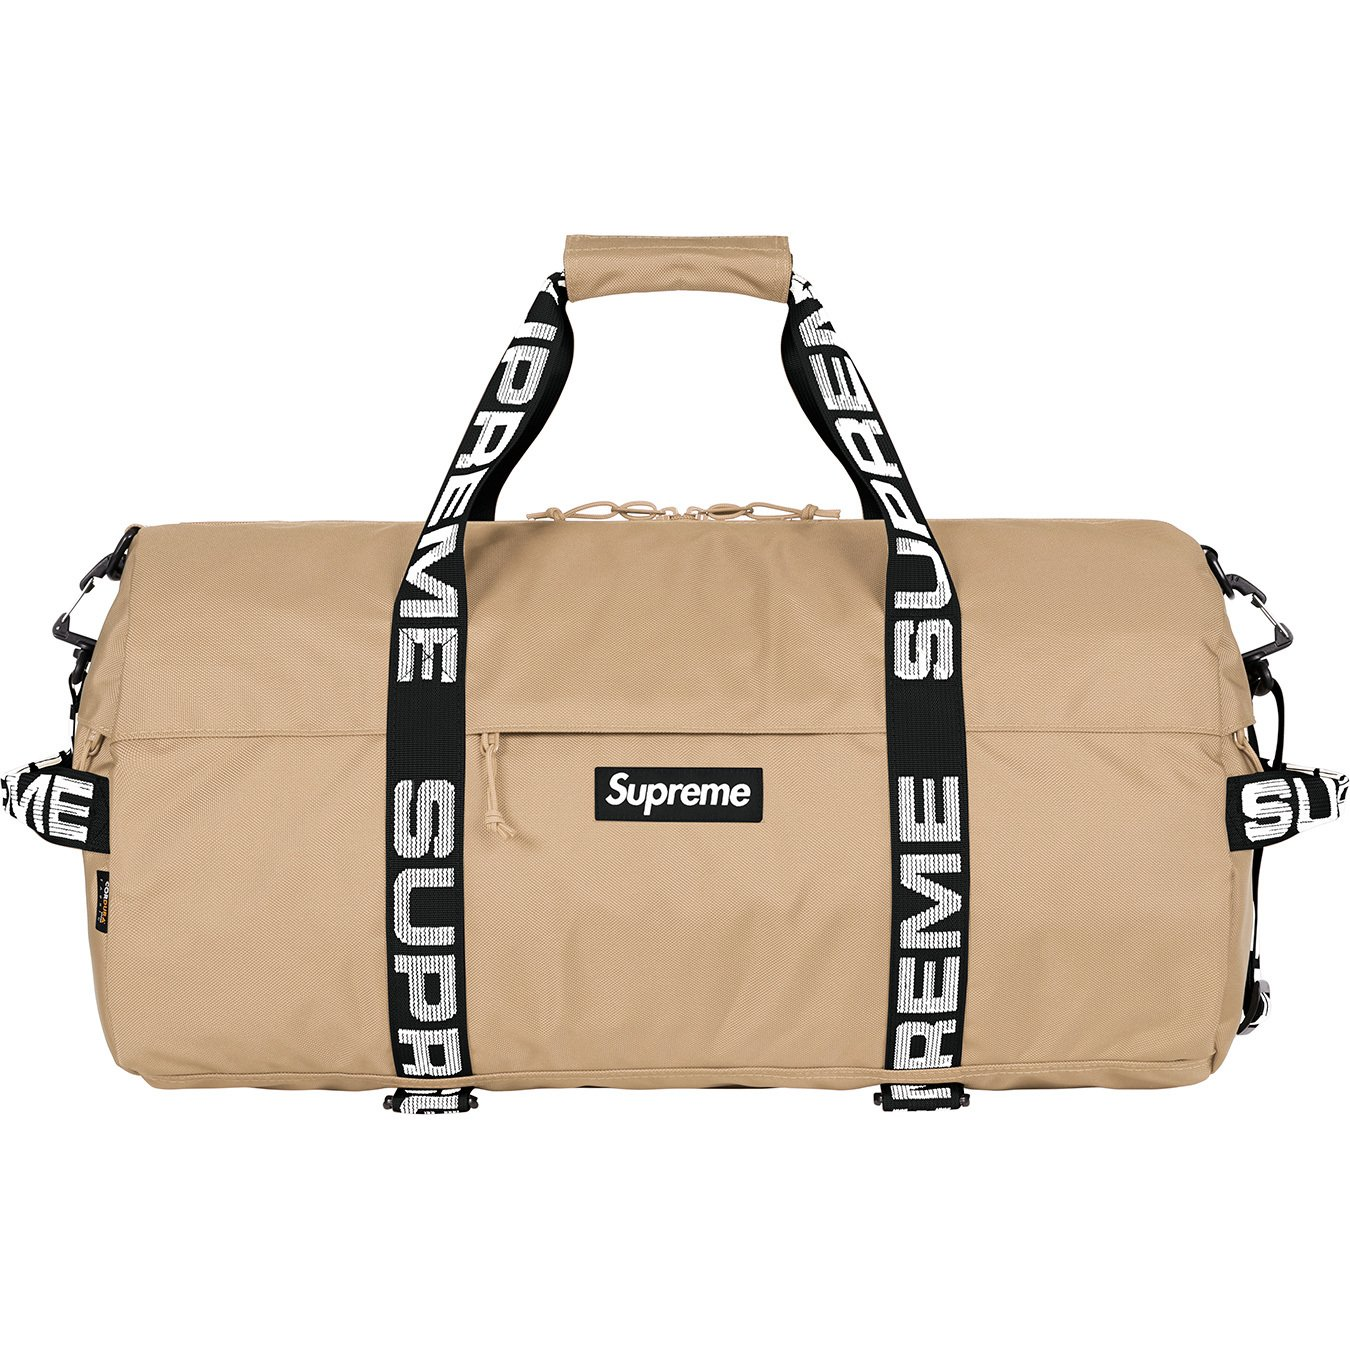 supreme-18ss-spring-summer-duffle-bag